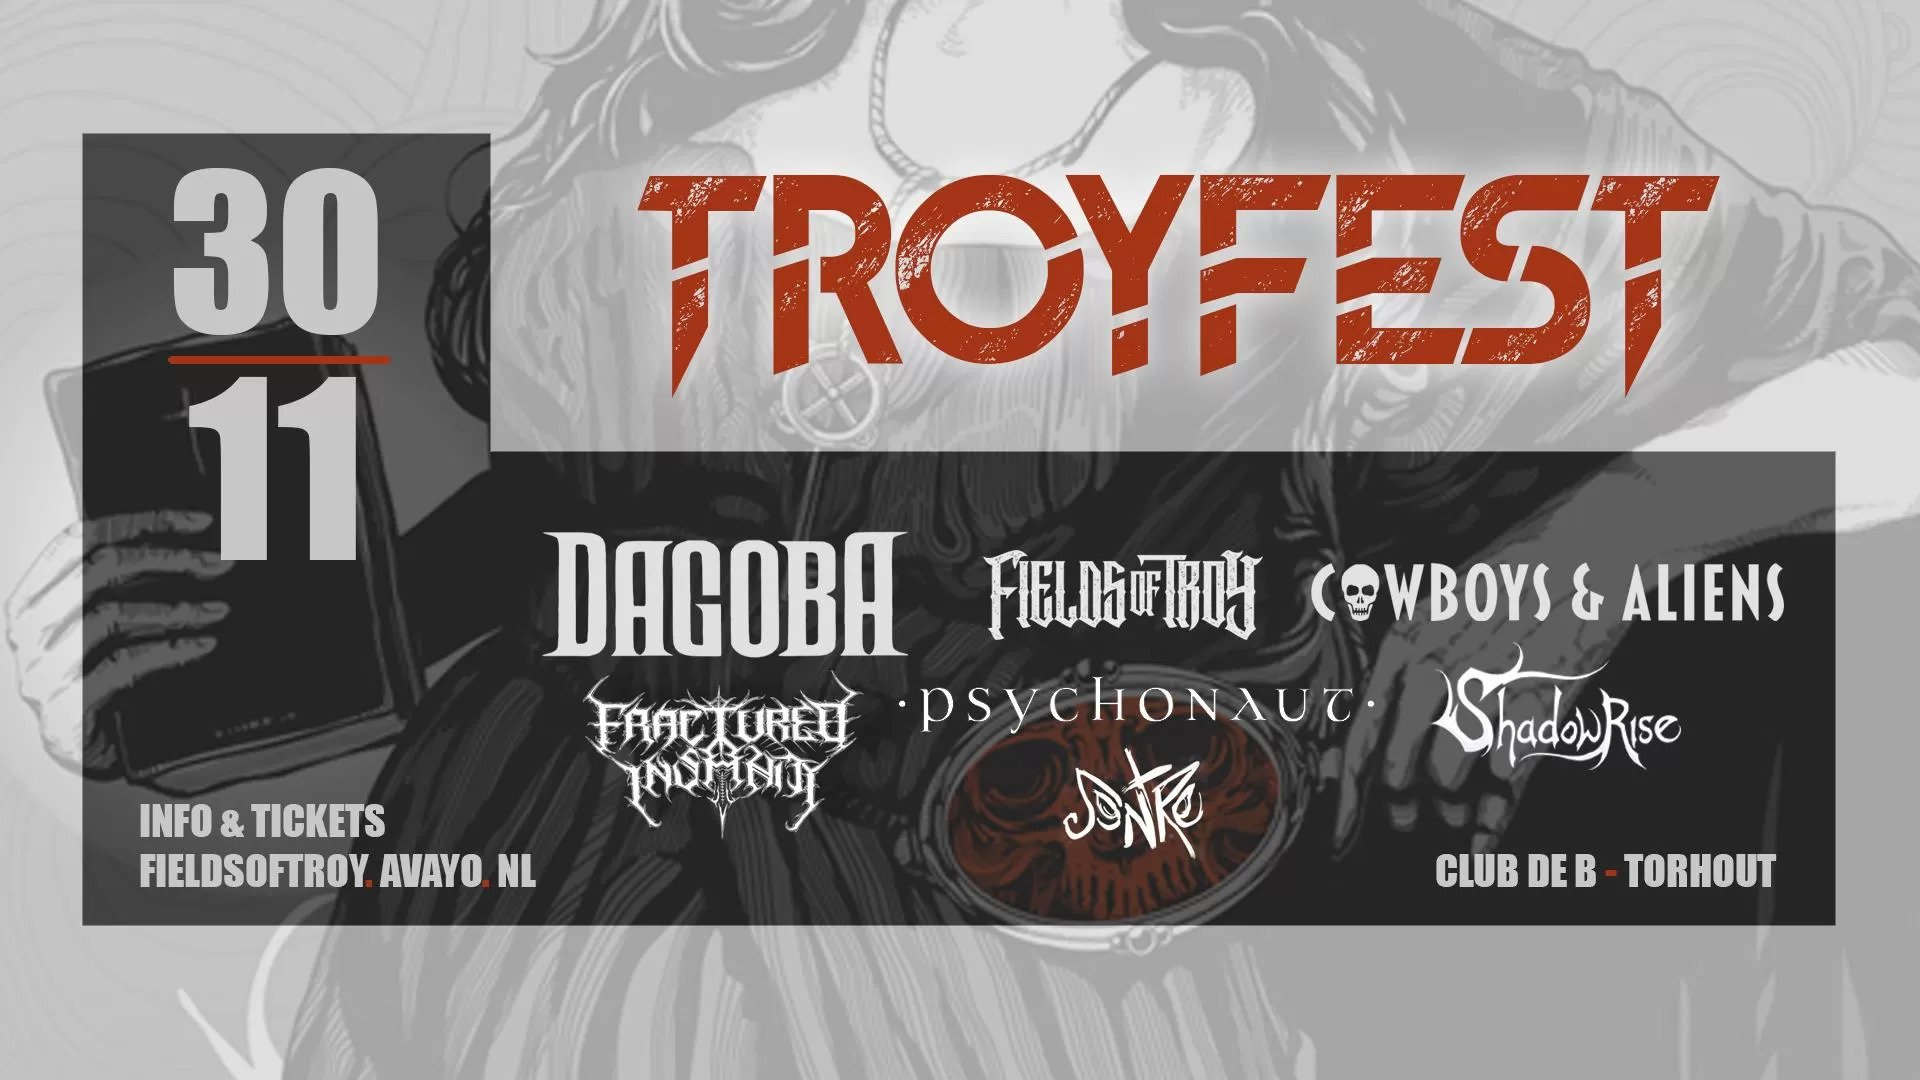 Troyfest – 30 november – Club de B, Torhout